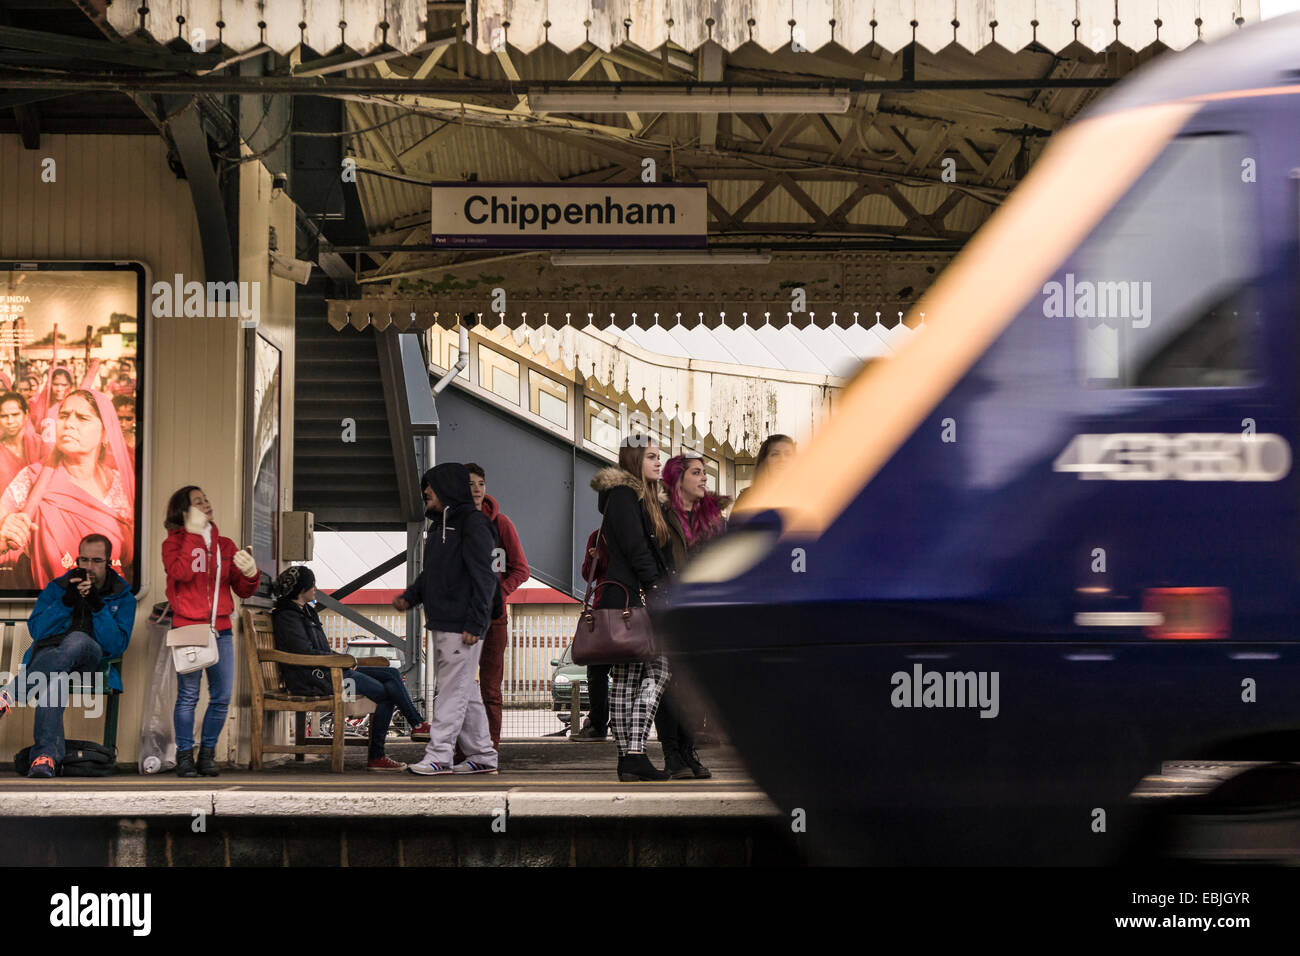 Waiting at the Station - Stock Image